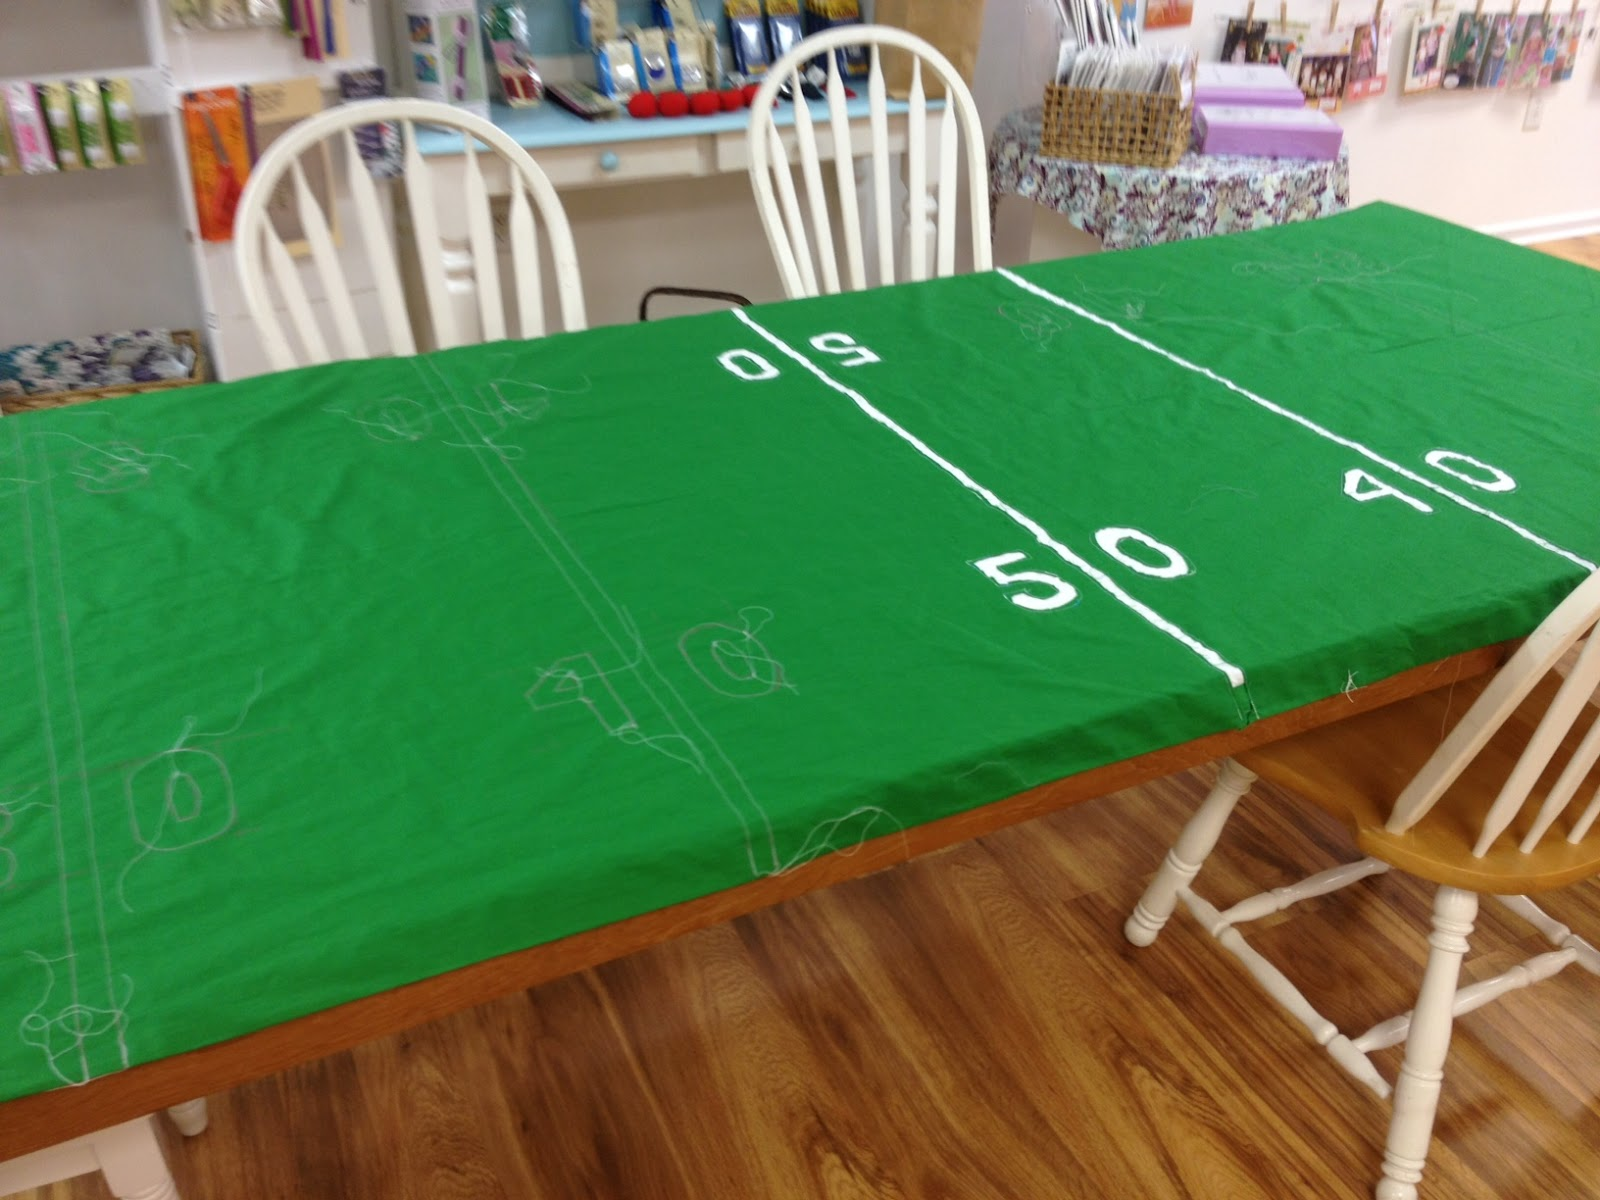 This green polyester table runner with white screen printed football field design would be perfect for your tailgating or football party decor. At this incredible price it could be disposable, but it's certainly reusable! 72